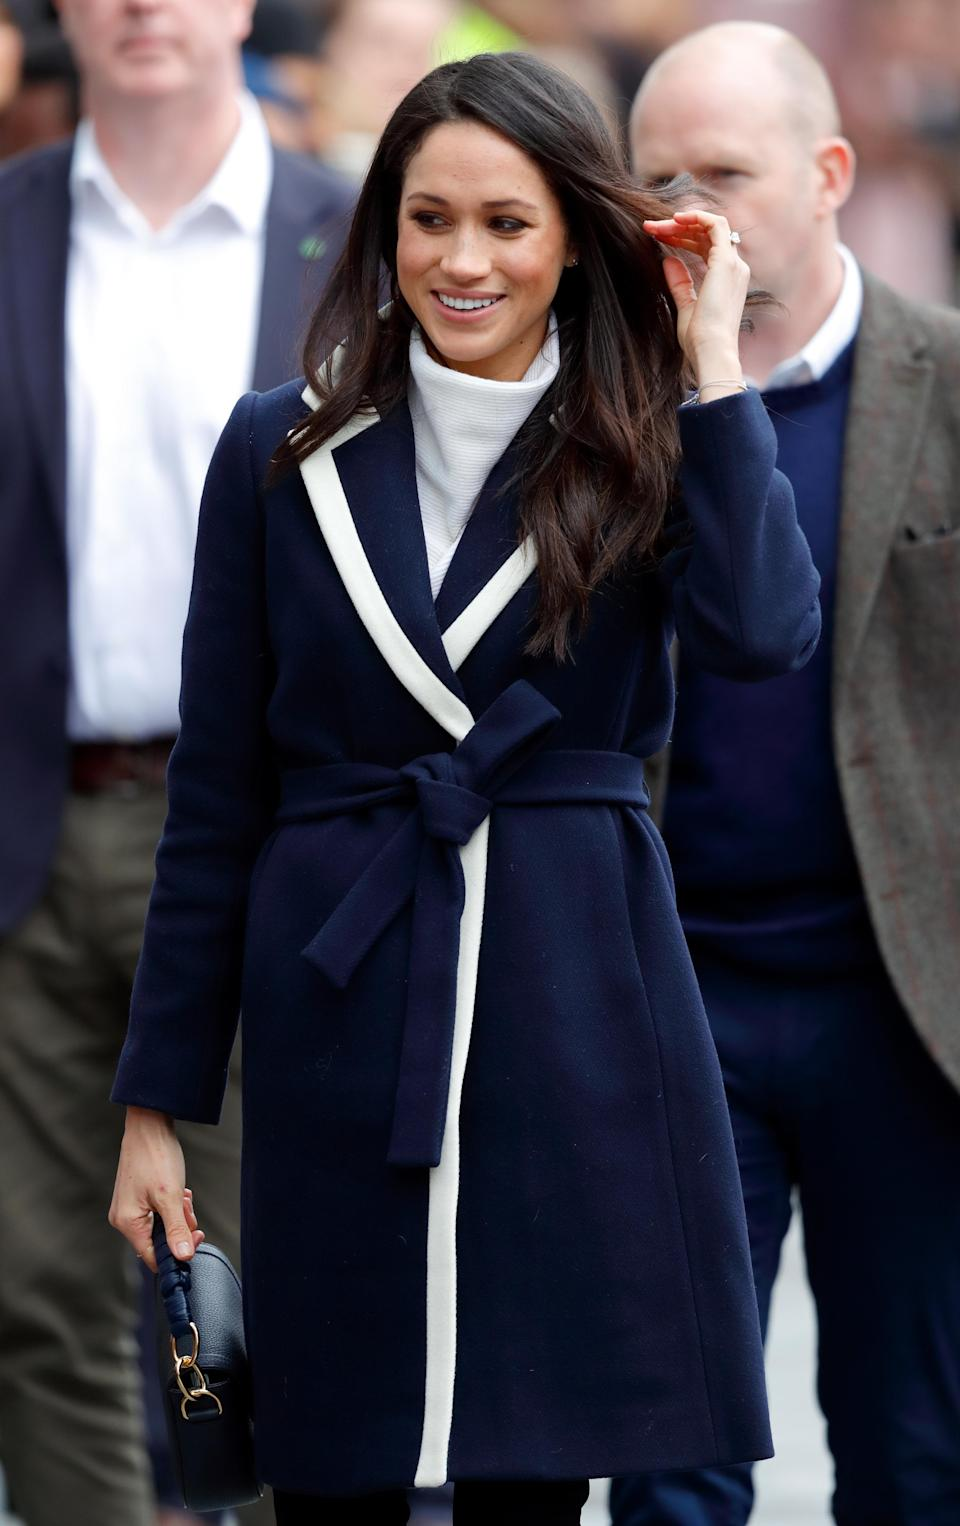 <p>Meghan Markle visits Millennium Point to attend an event celebrating International Women's Day on March 8, 2018 in Birmingham, England. (Photo: Max Mumby/Indigo/Getty Images) </p>